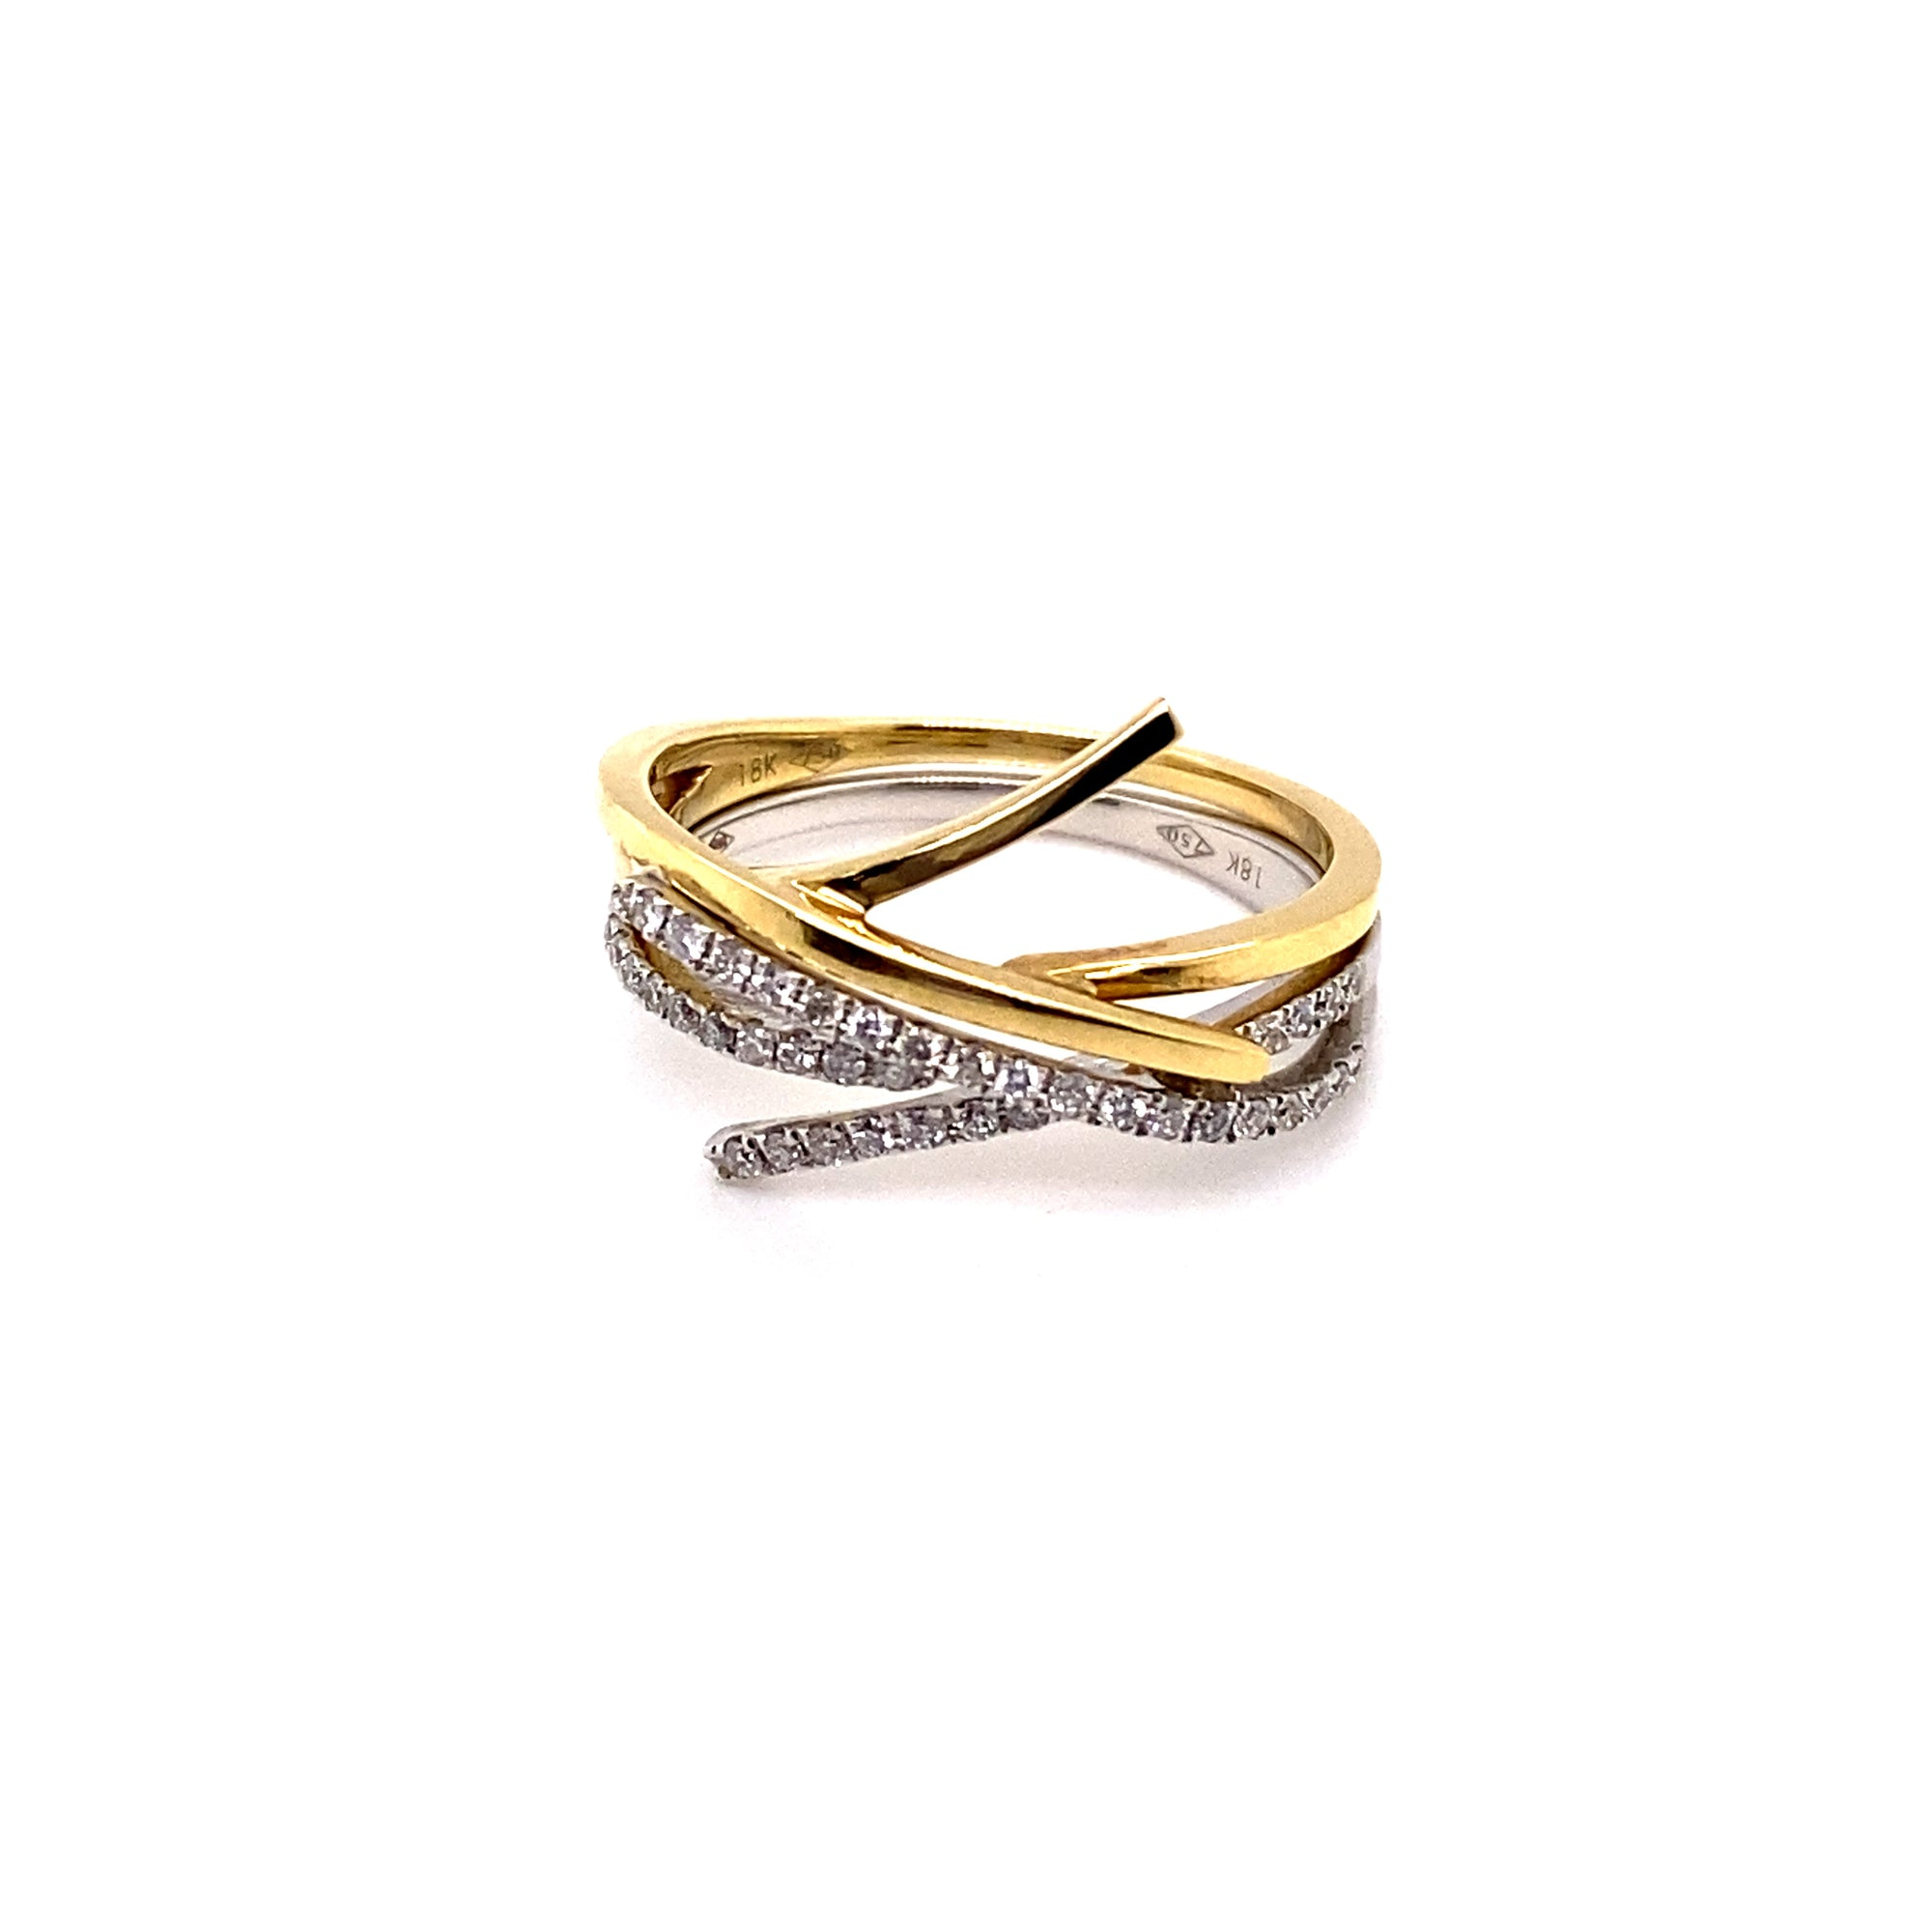 18ct Yellow and White Gold Diamond Stacker Ring - Sonny's Jewellers